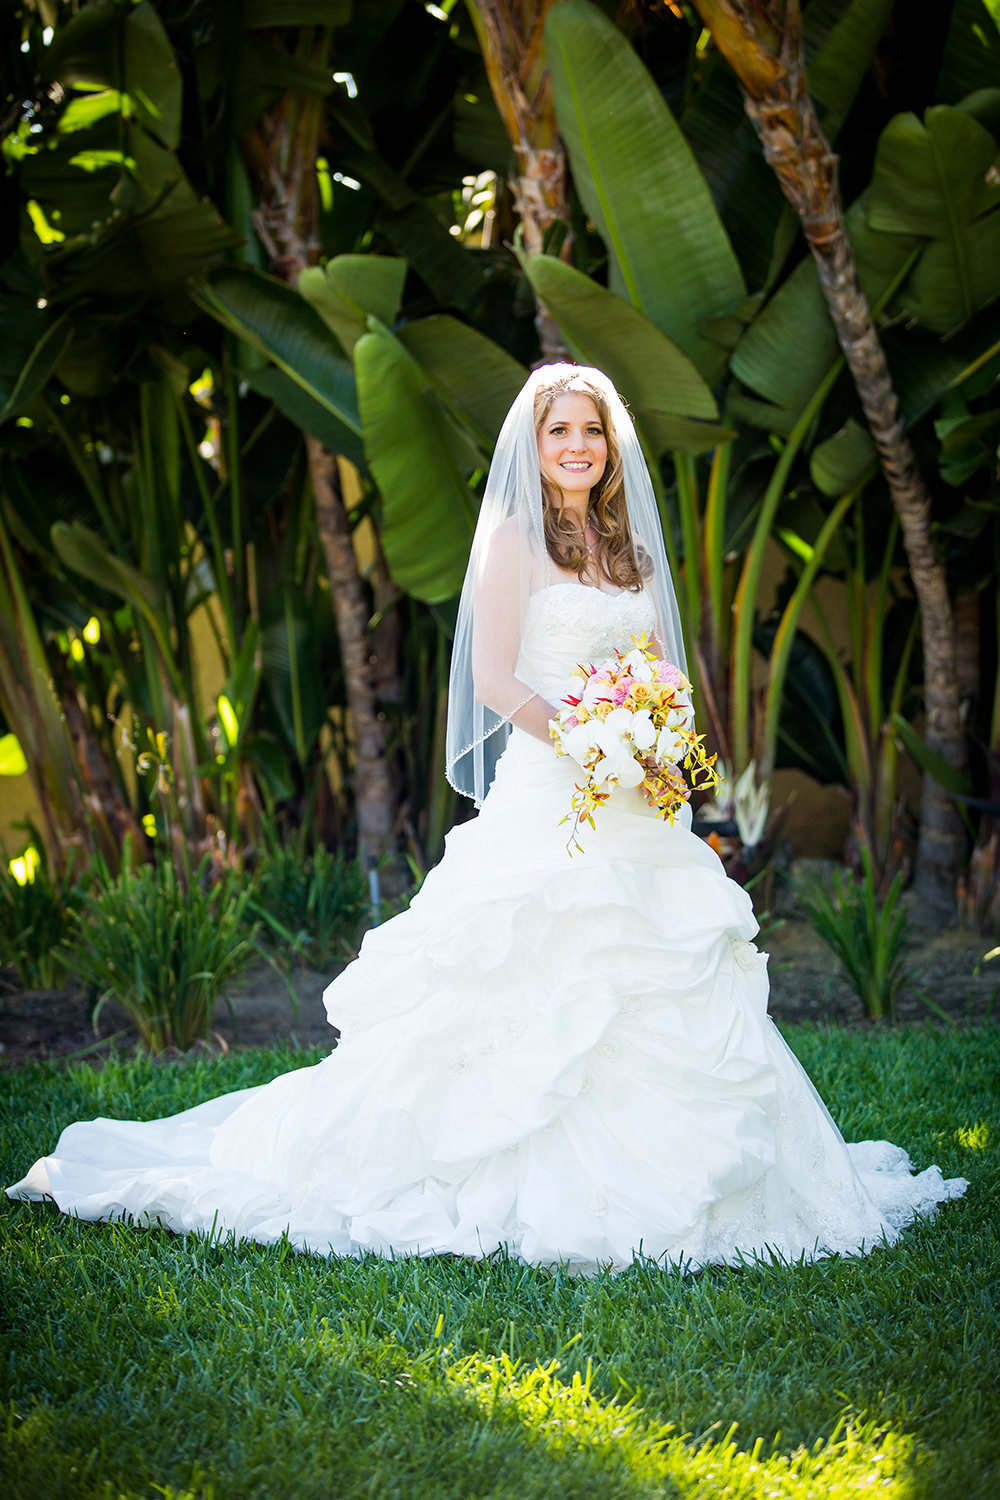 tropical bridal image at hilton mission bay